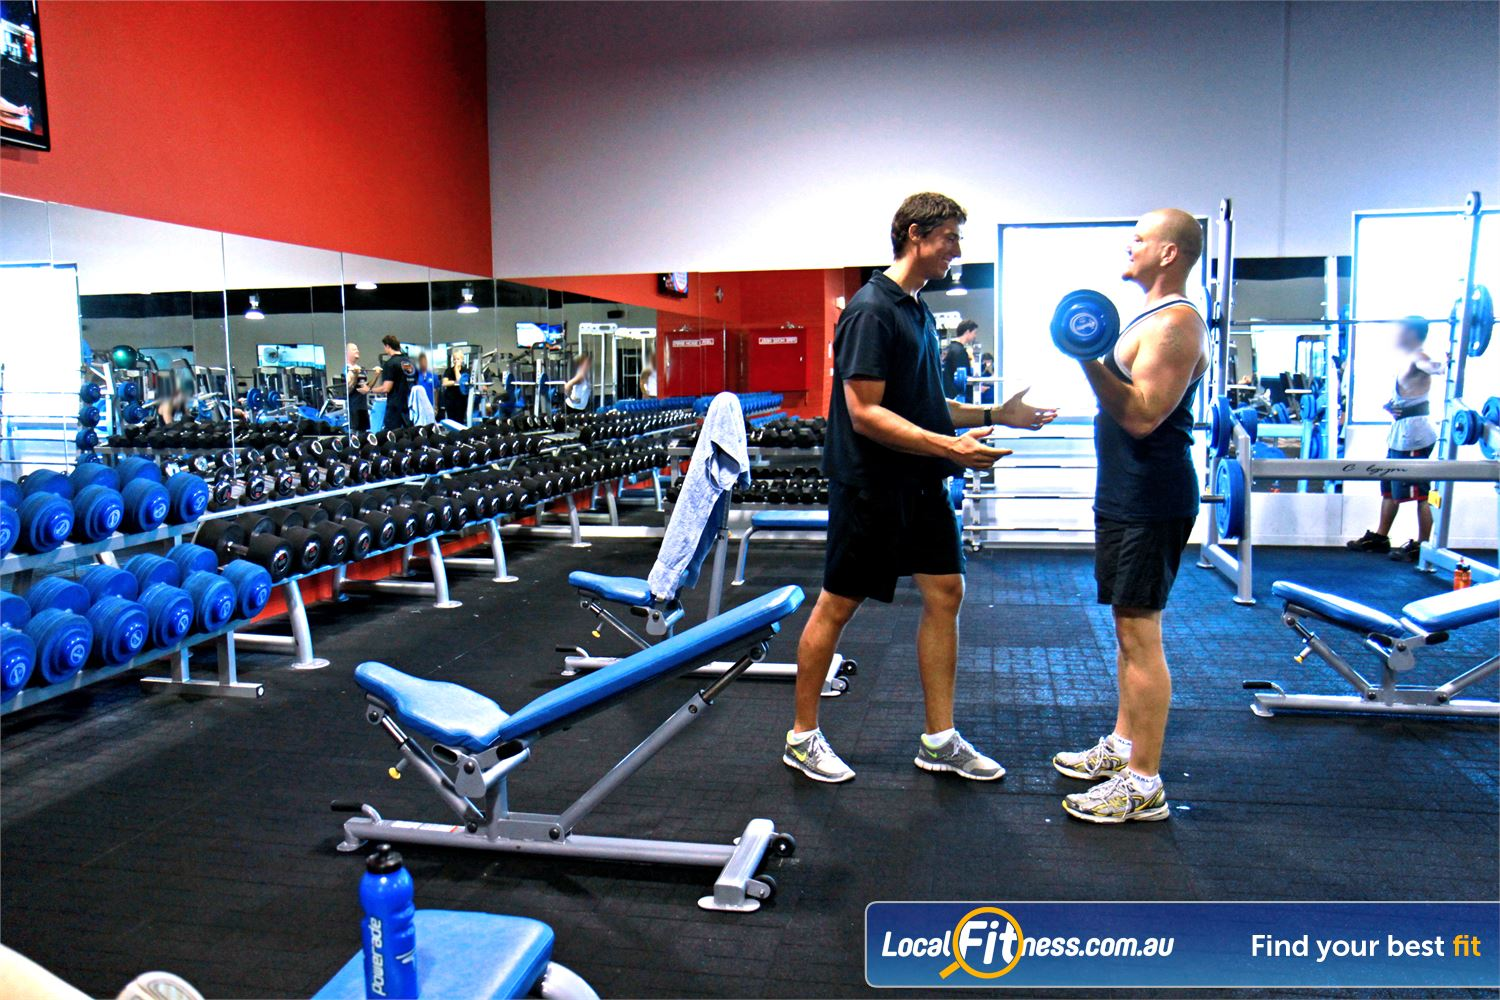 Goodlife Health Clubs Kingsway Near Greenwood Madeley gym instructors can tailor a strength program to suit your goals.